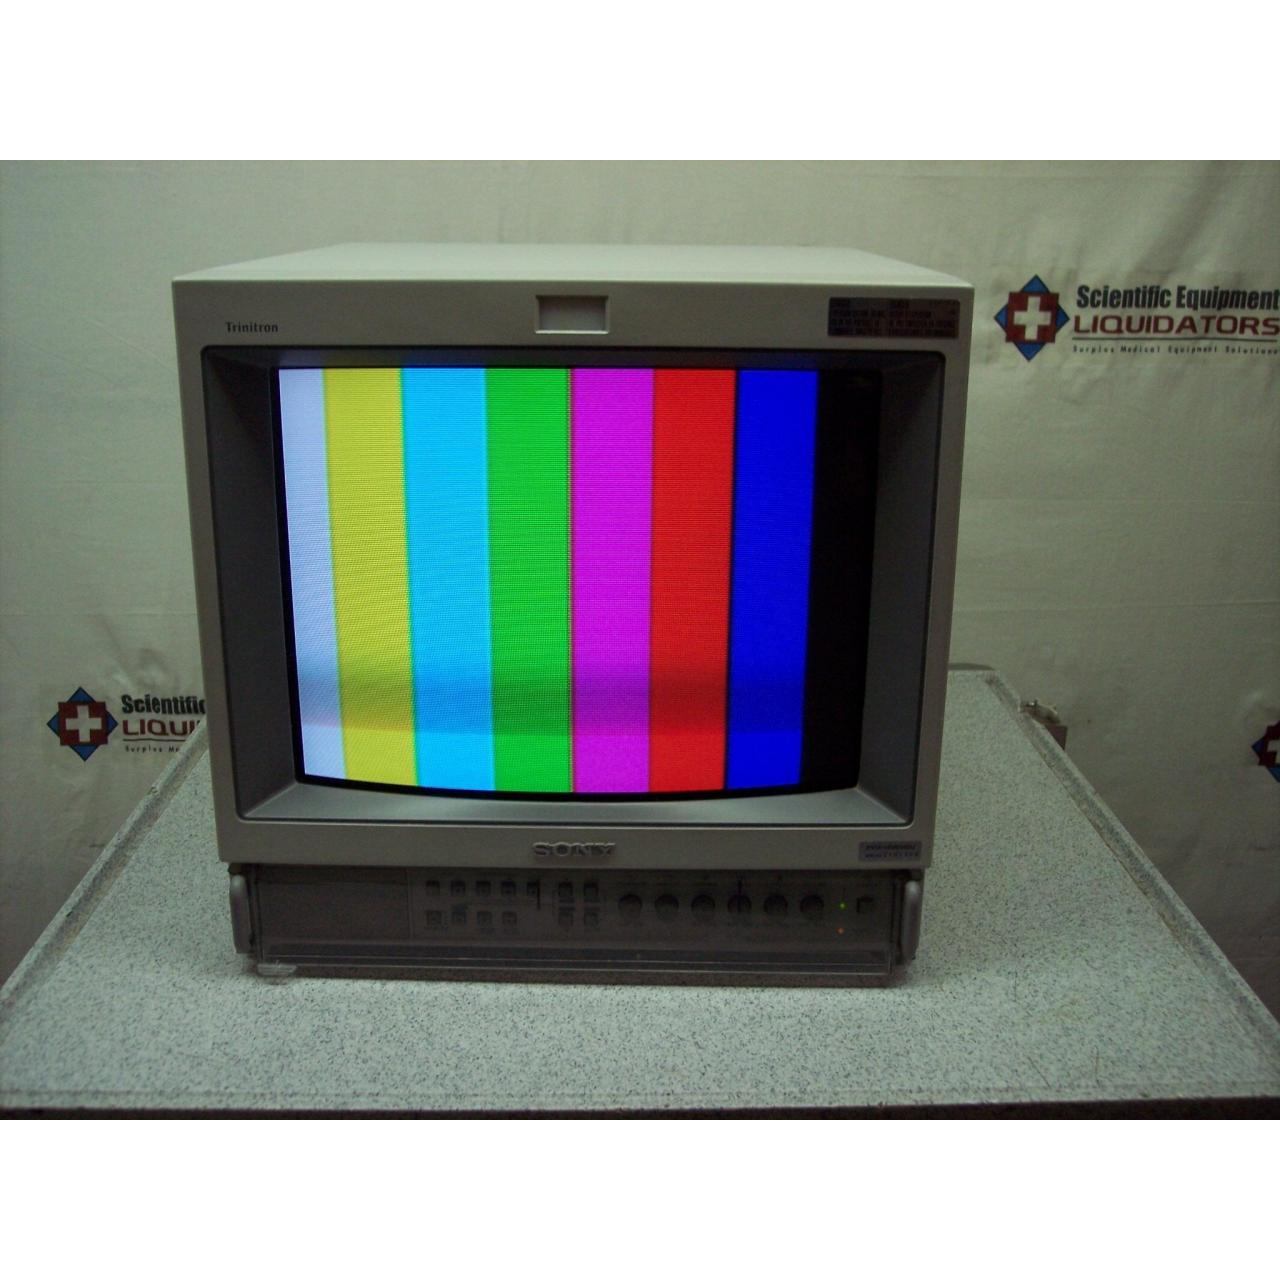 Sony PVM-14M2MDU Color Video Monitor